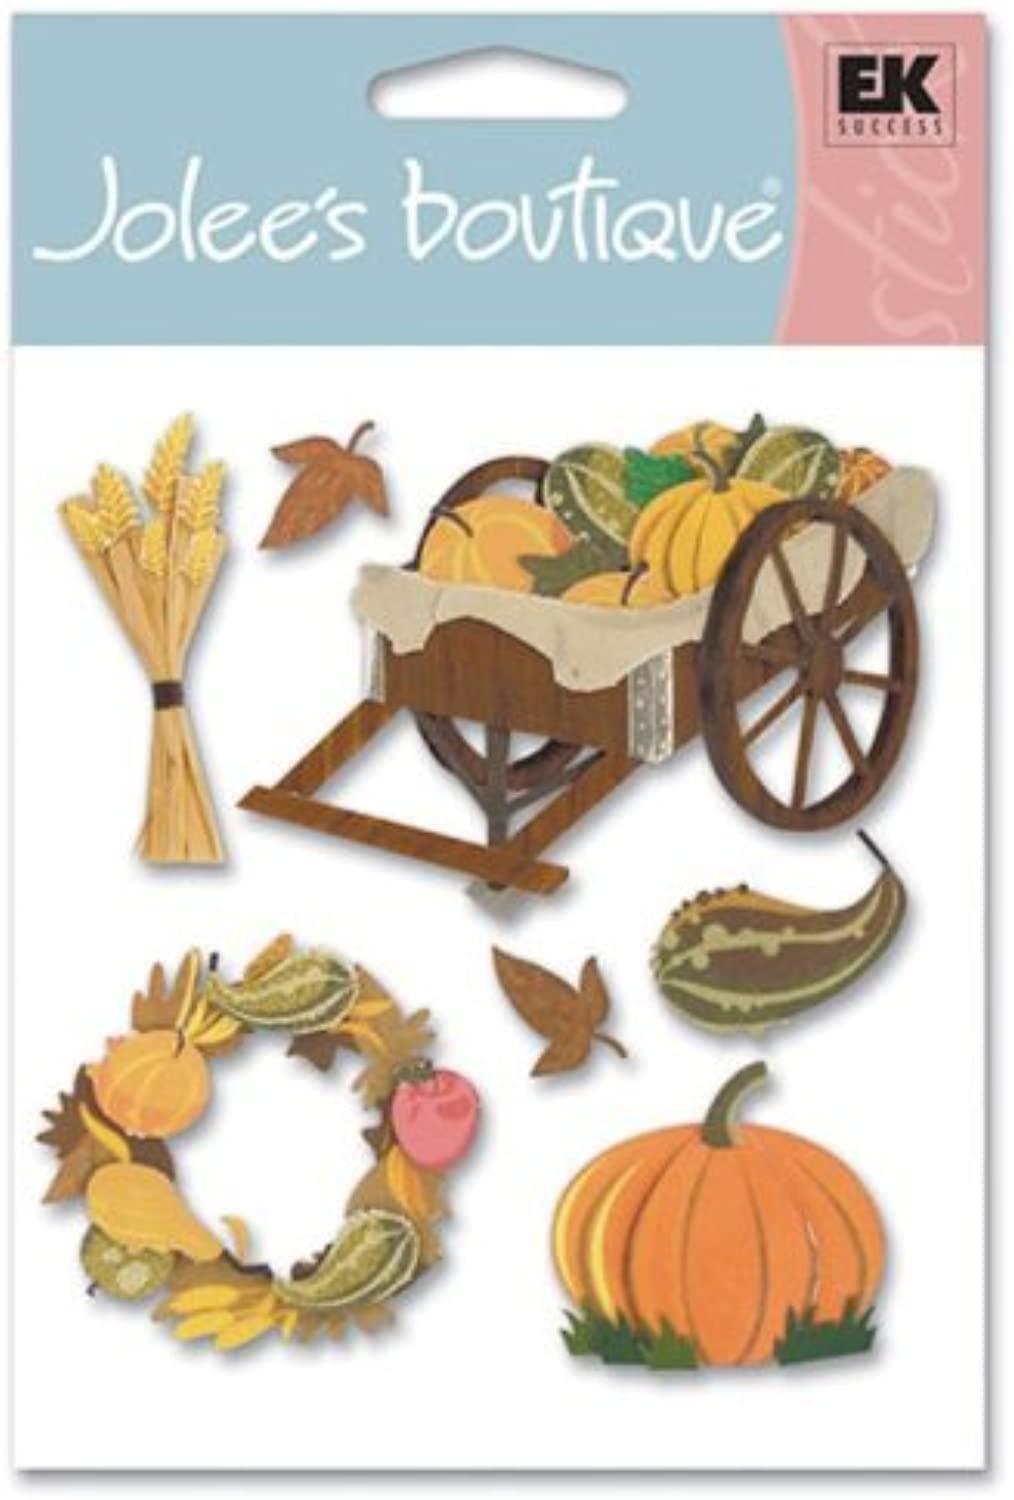 Jolee's Boutique Dimensional Stickers, Pumpkin Harvest by Jolee's Boutique B01KBBGK5Q | Spezielle Funktion